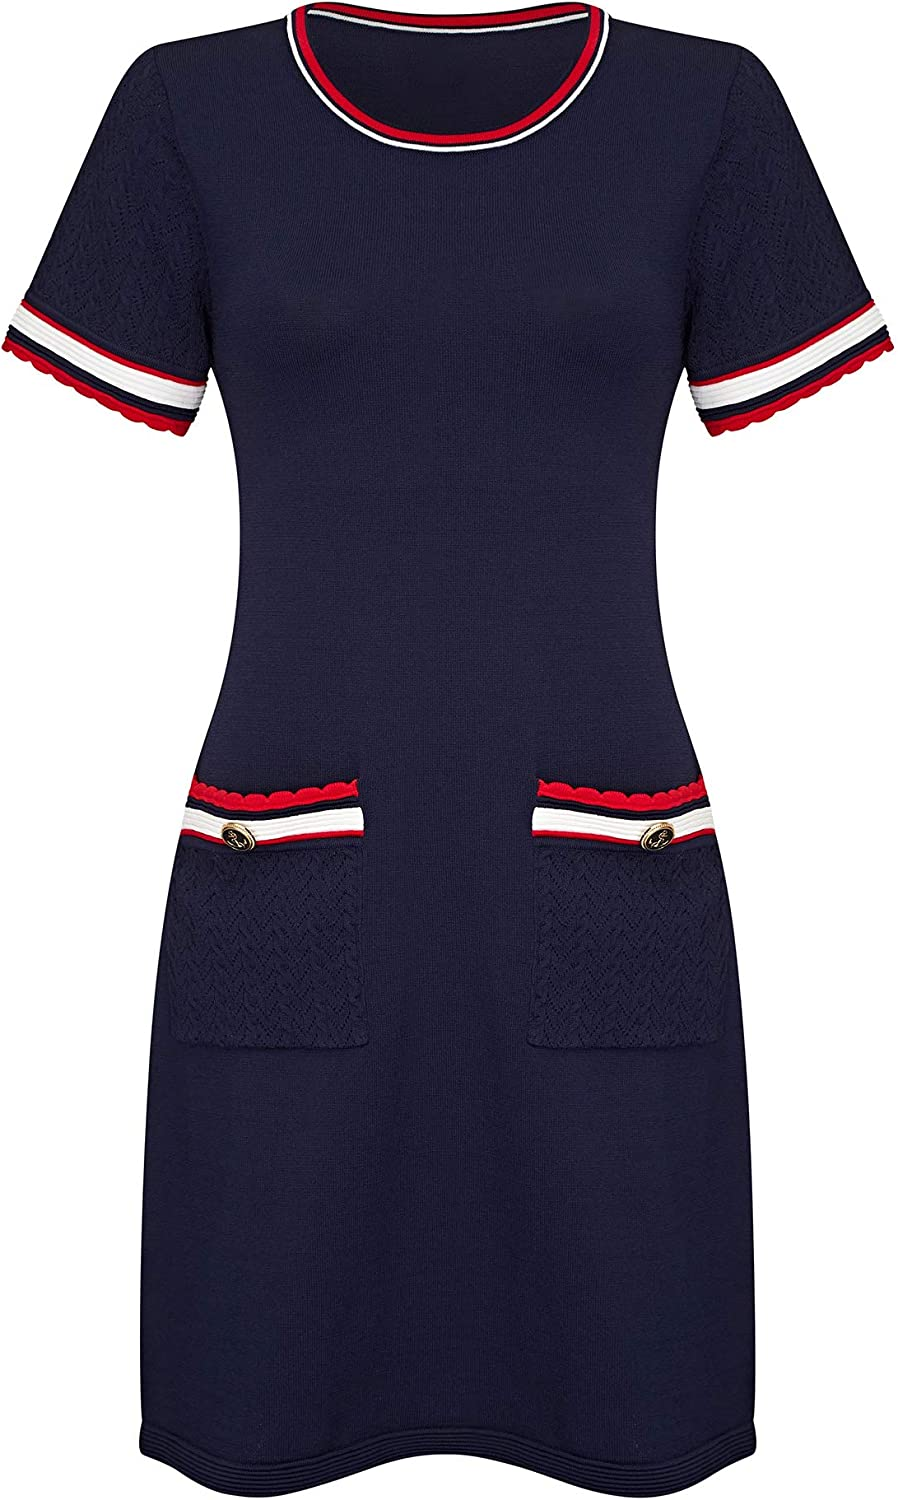 Navy Knit Tunic With Stitch And Button Detail Navy